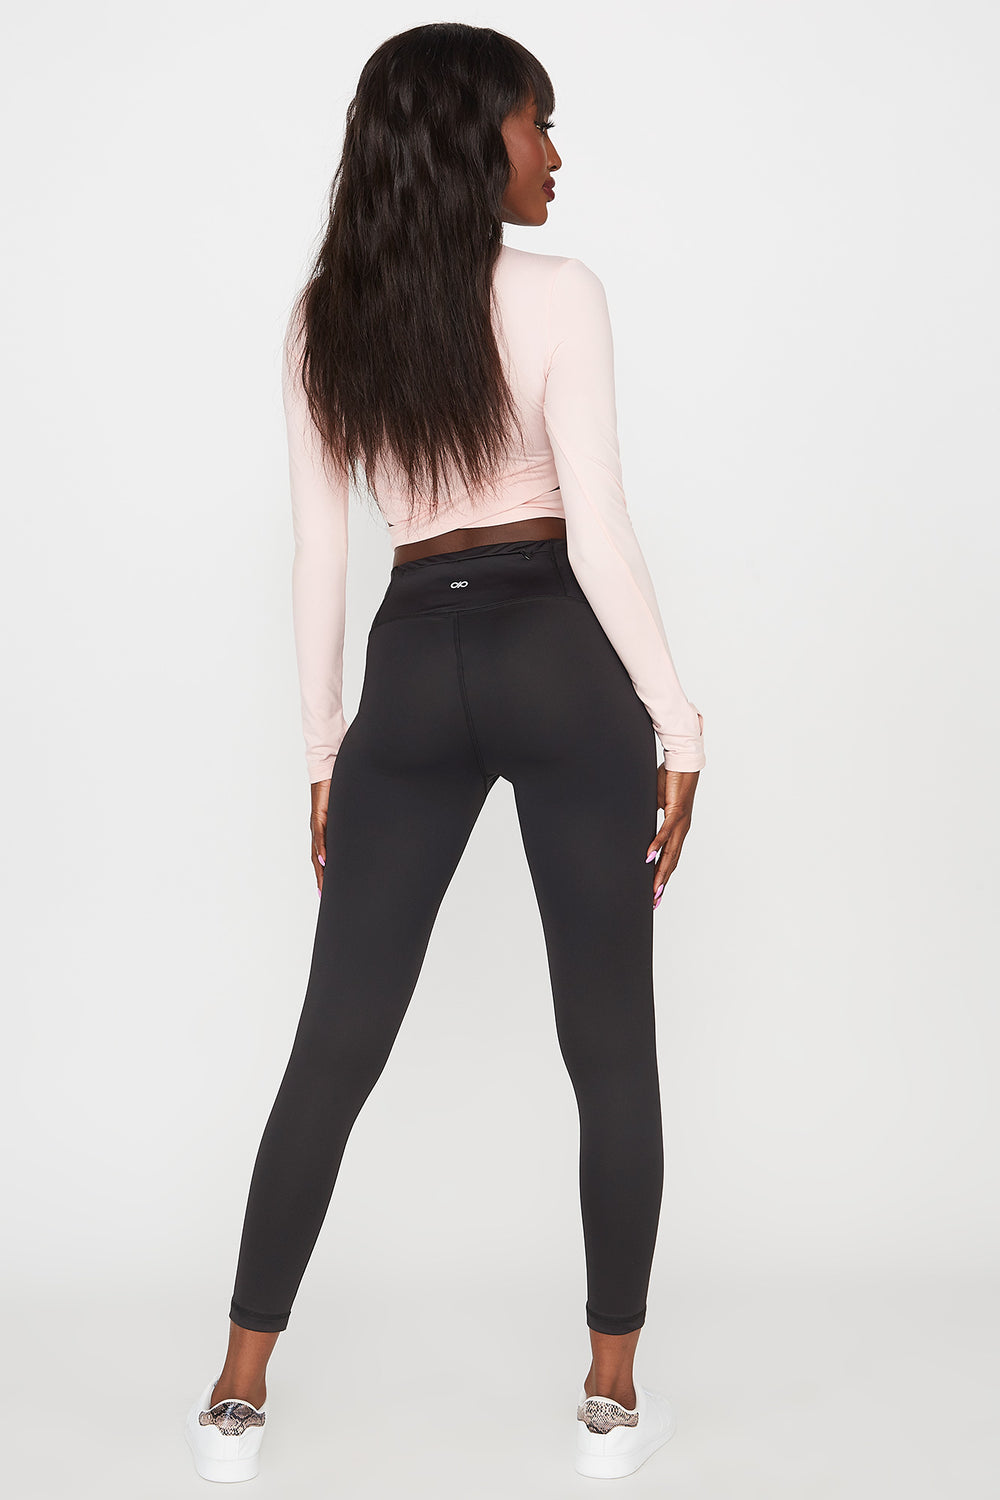 Infinite High-Rise Pocket Active Legging Black